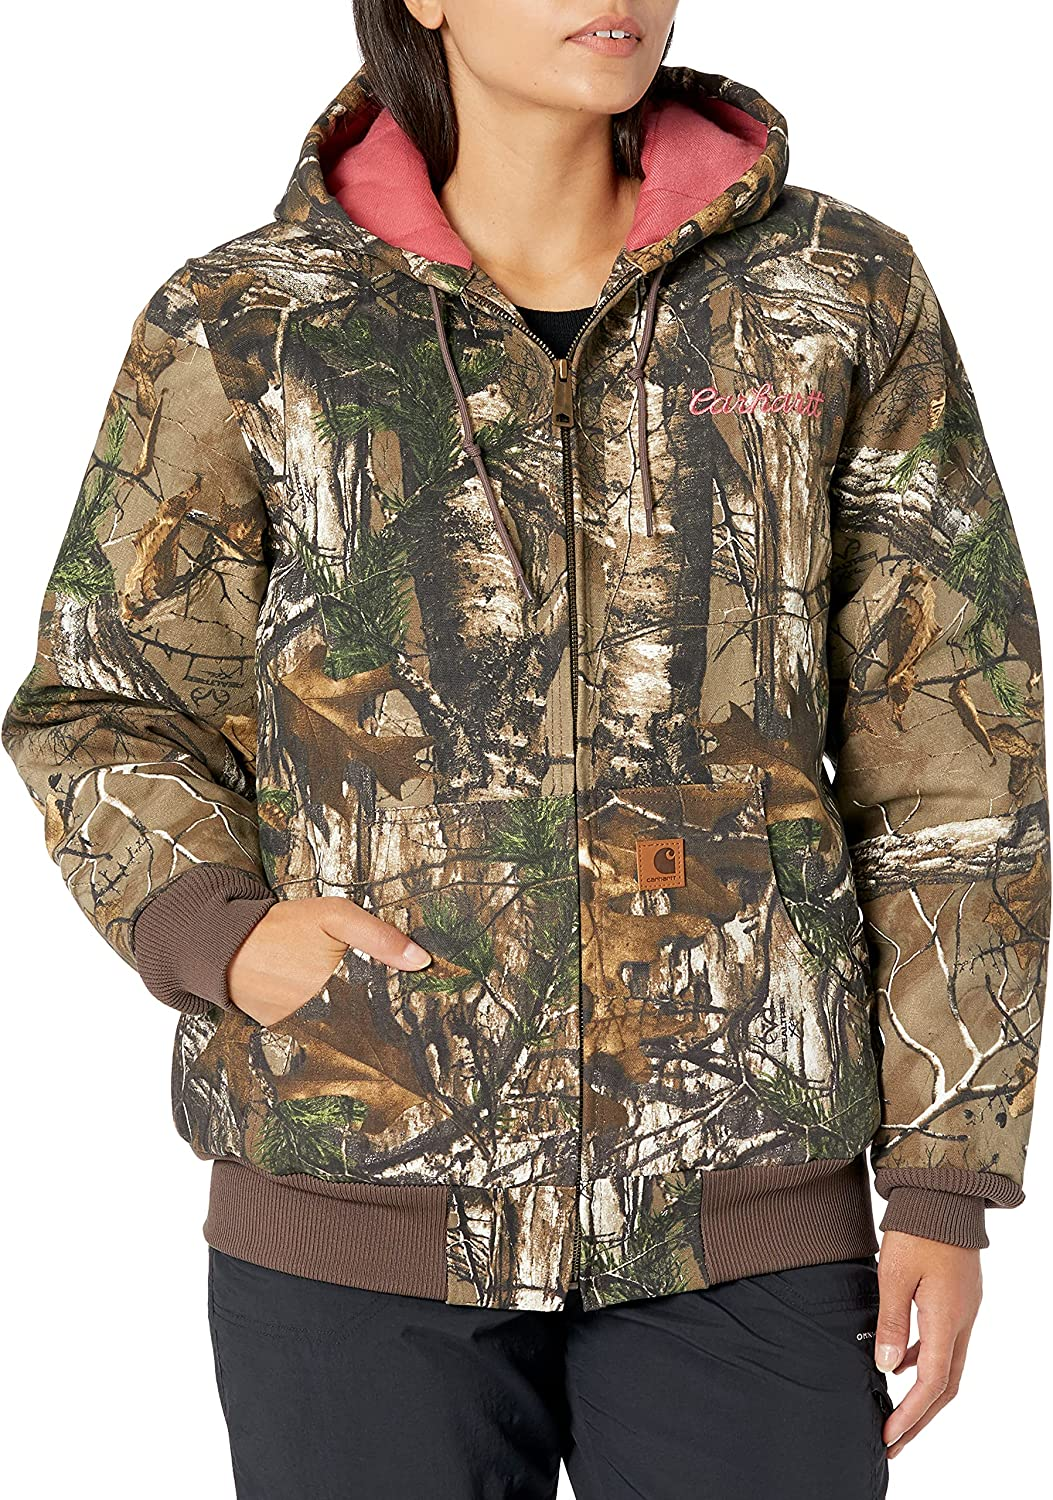 Carhartt Women's Camo Active Jacket Limited Special Price Popular product